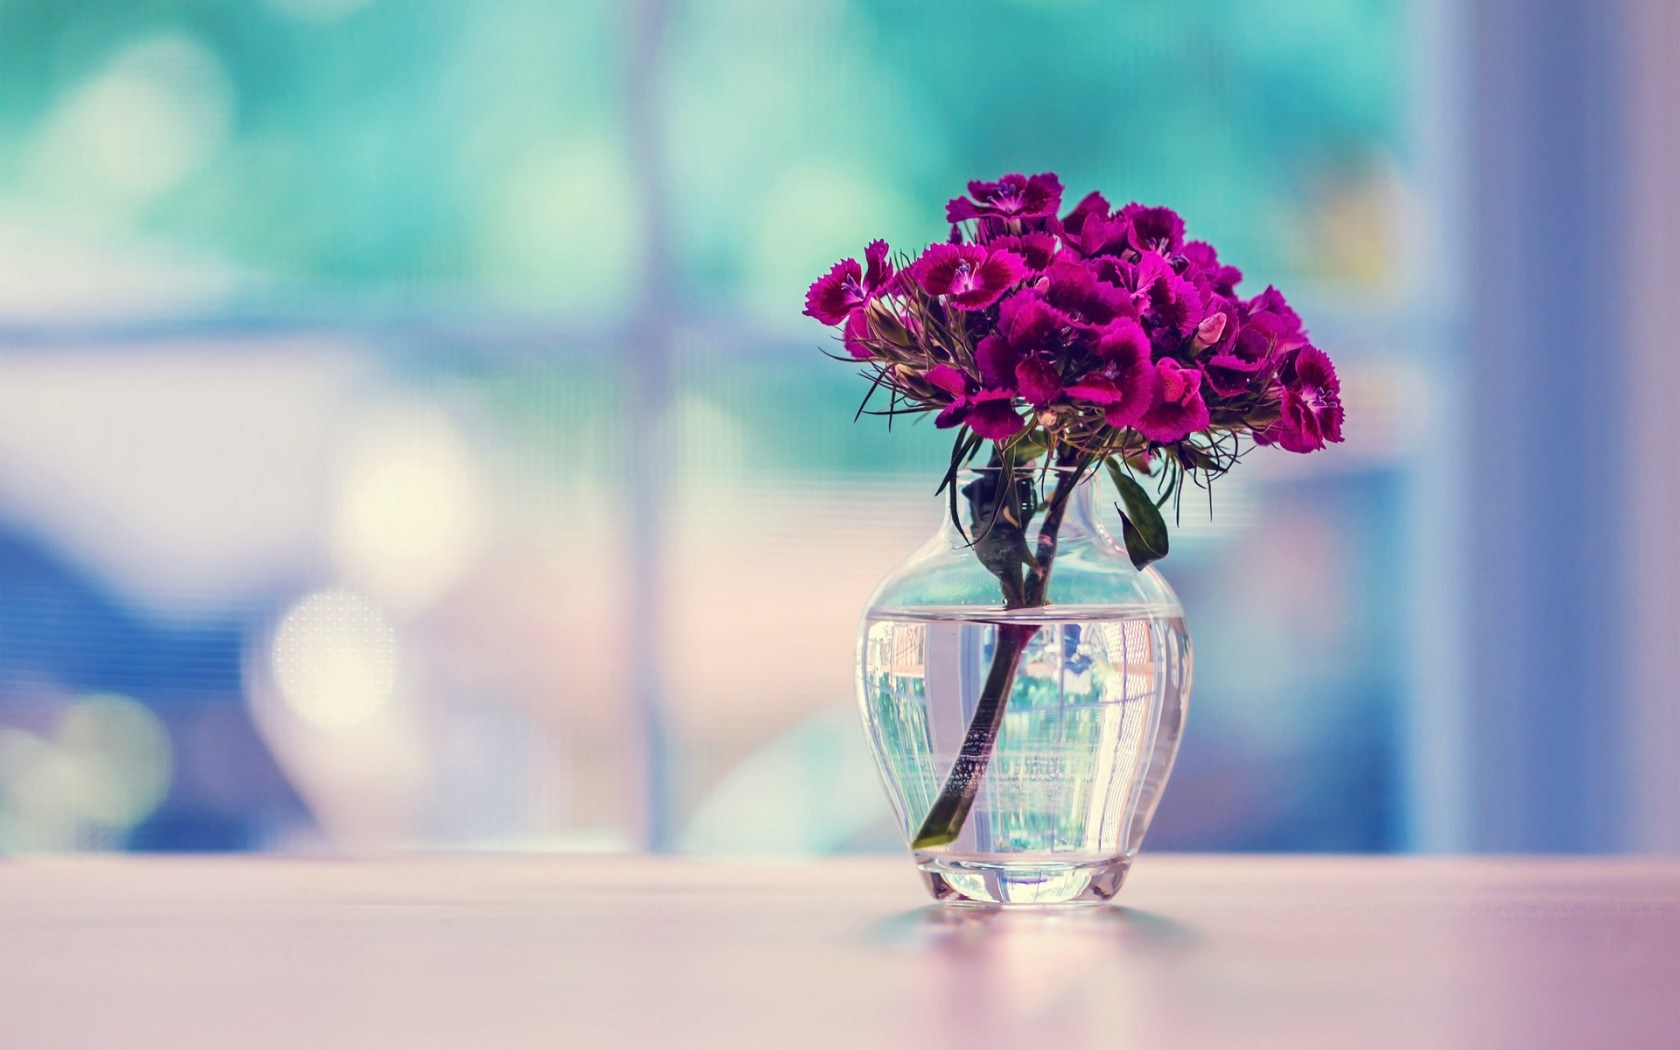 Pretty Vase Wallpaper